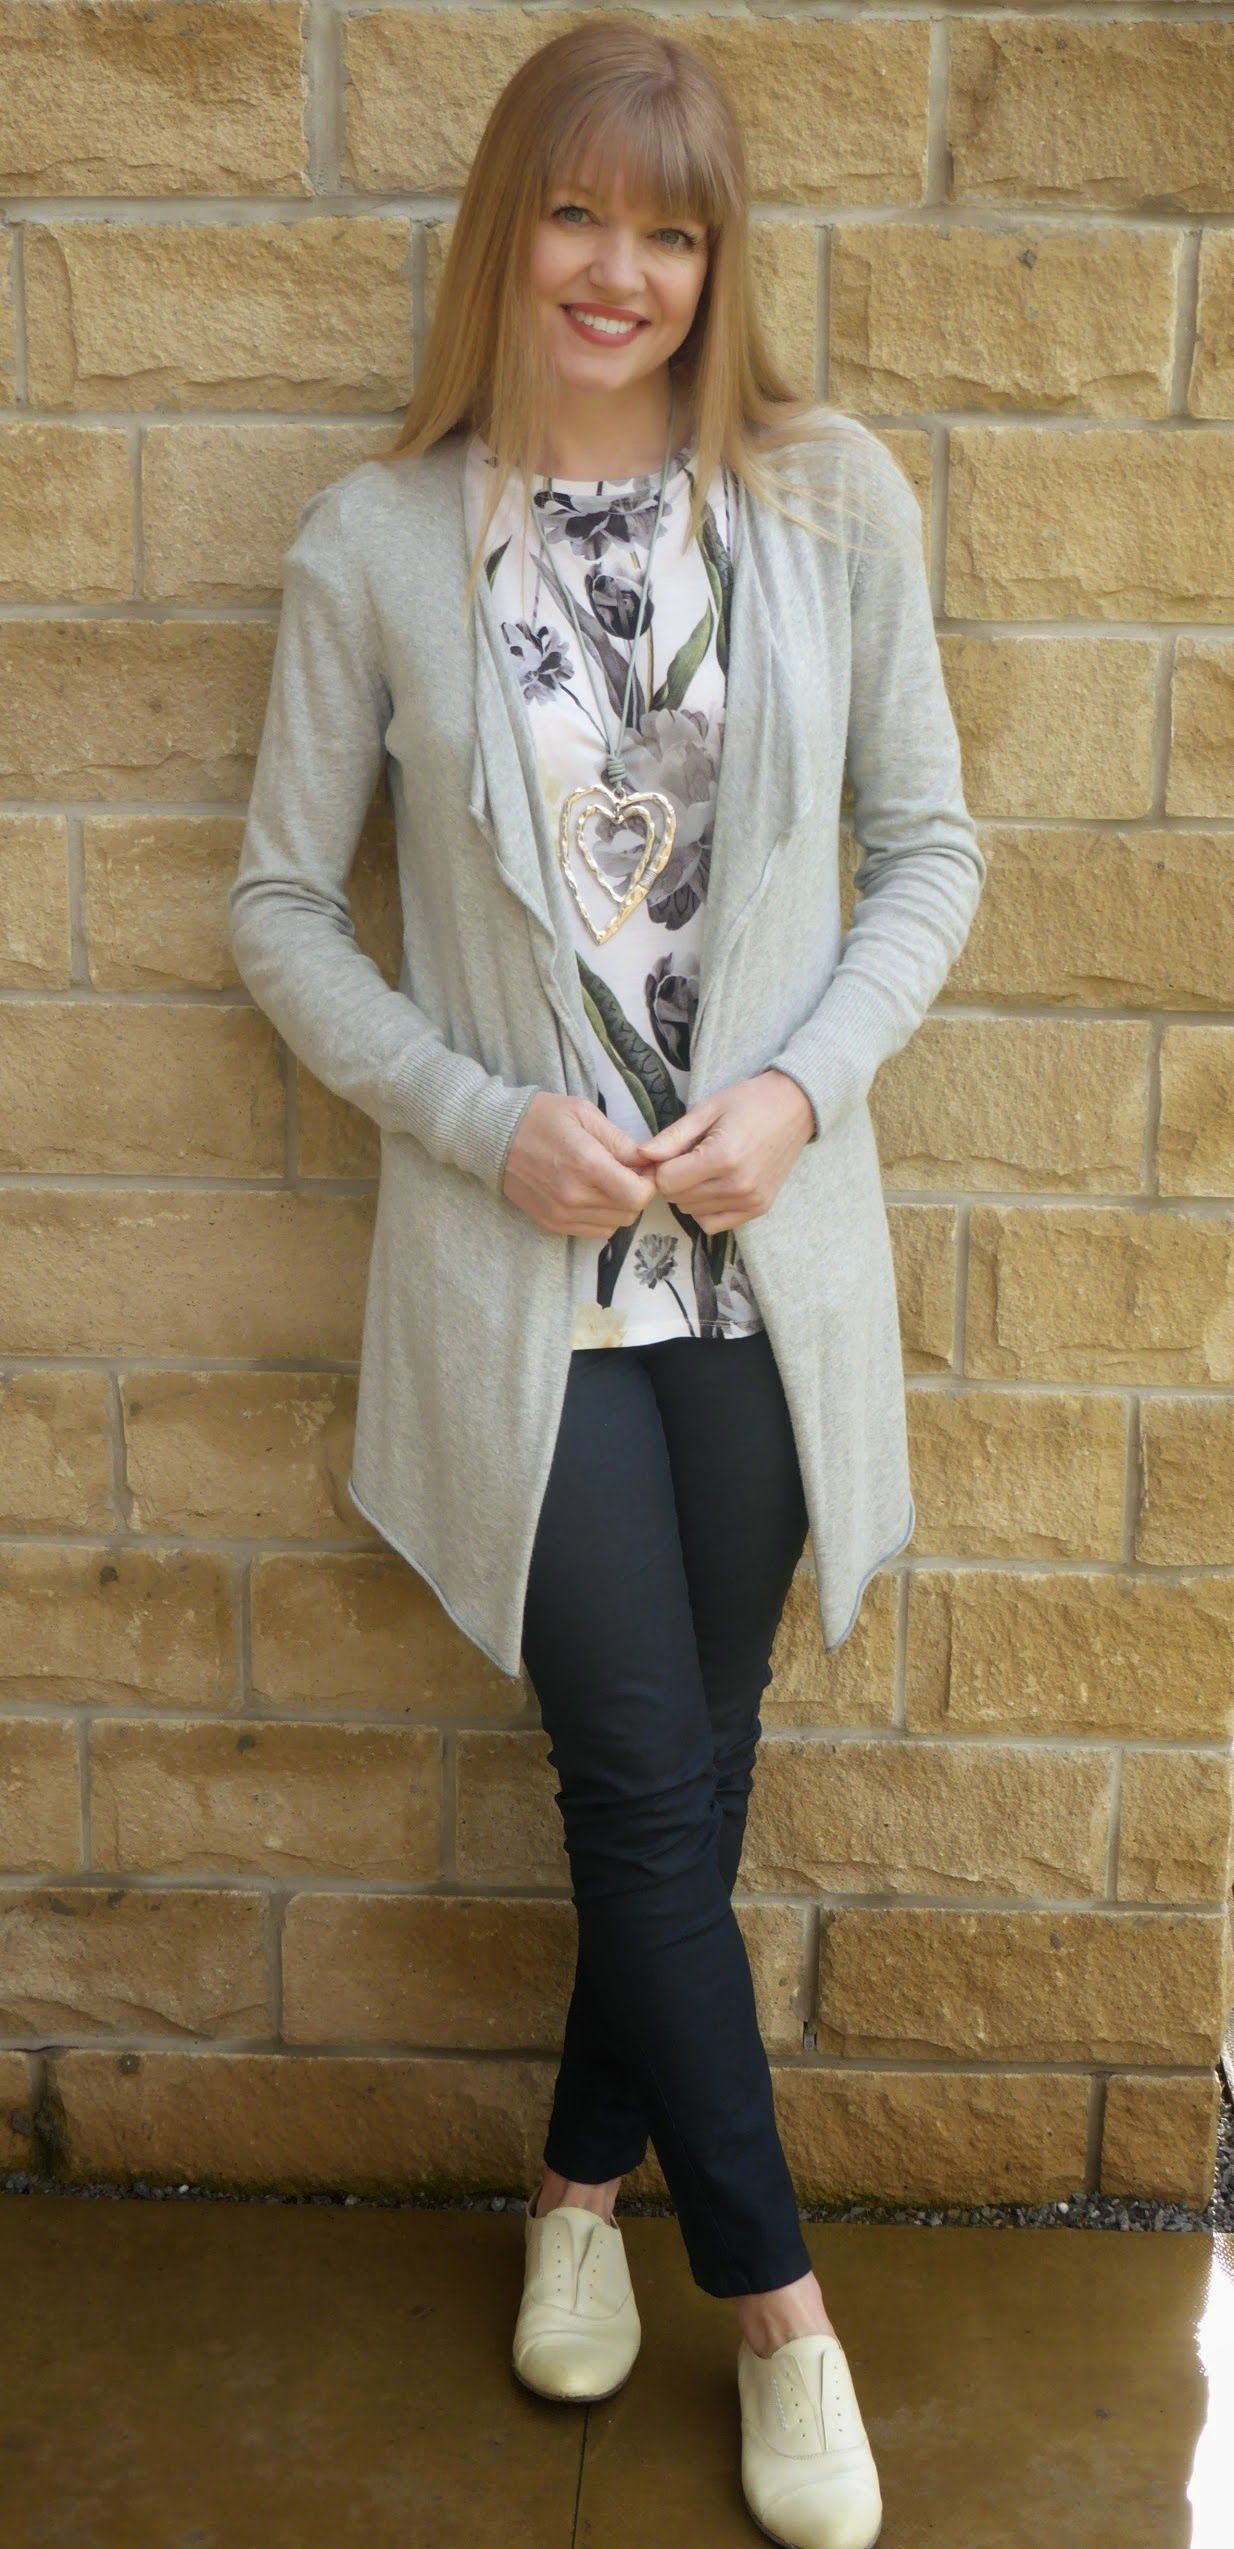 b34db668762 Outfit  Floral Top and Grey Longline Cardigan